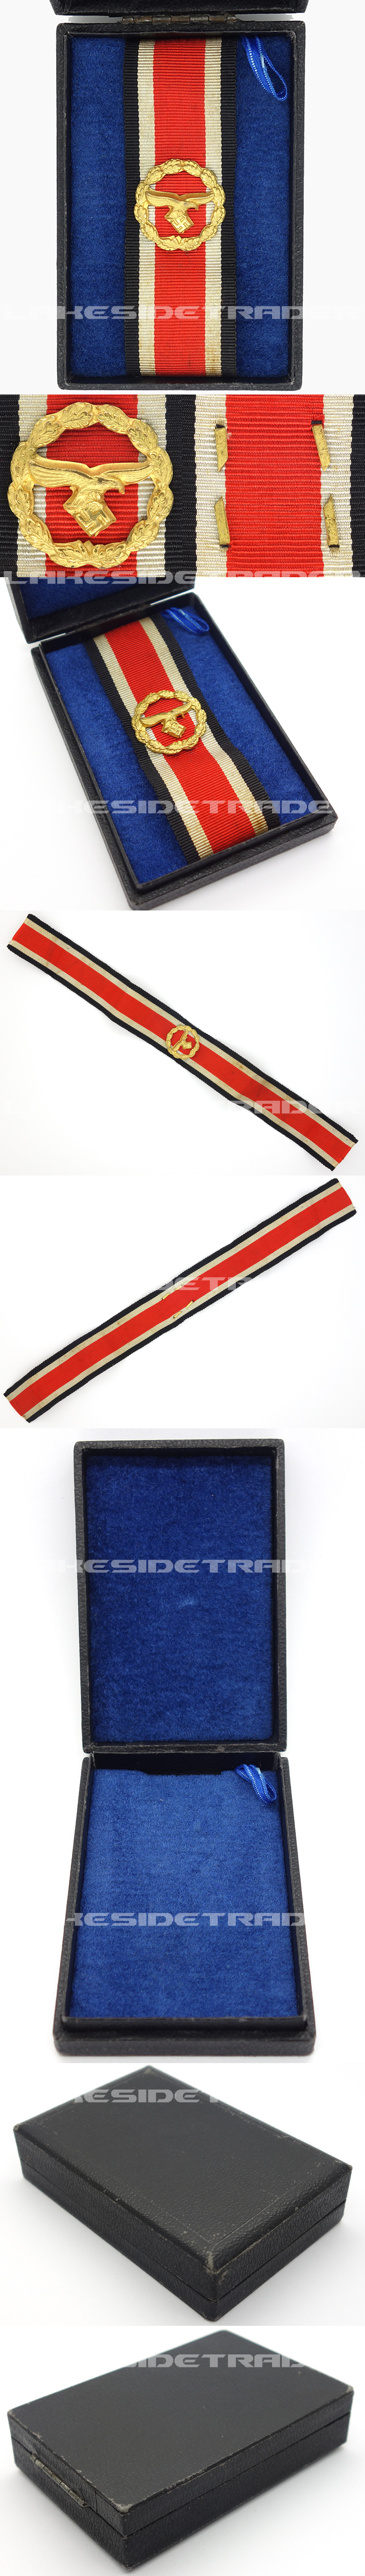 Cased Luftwaffe Honor Roll Clasp